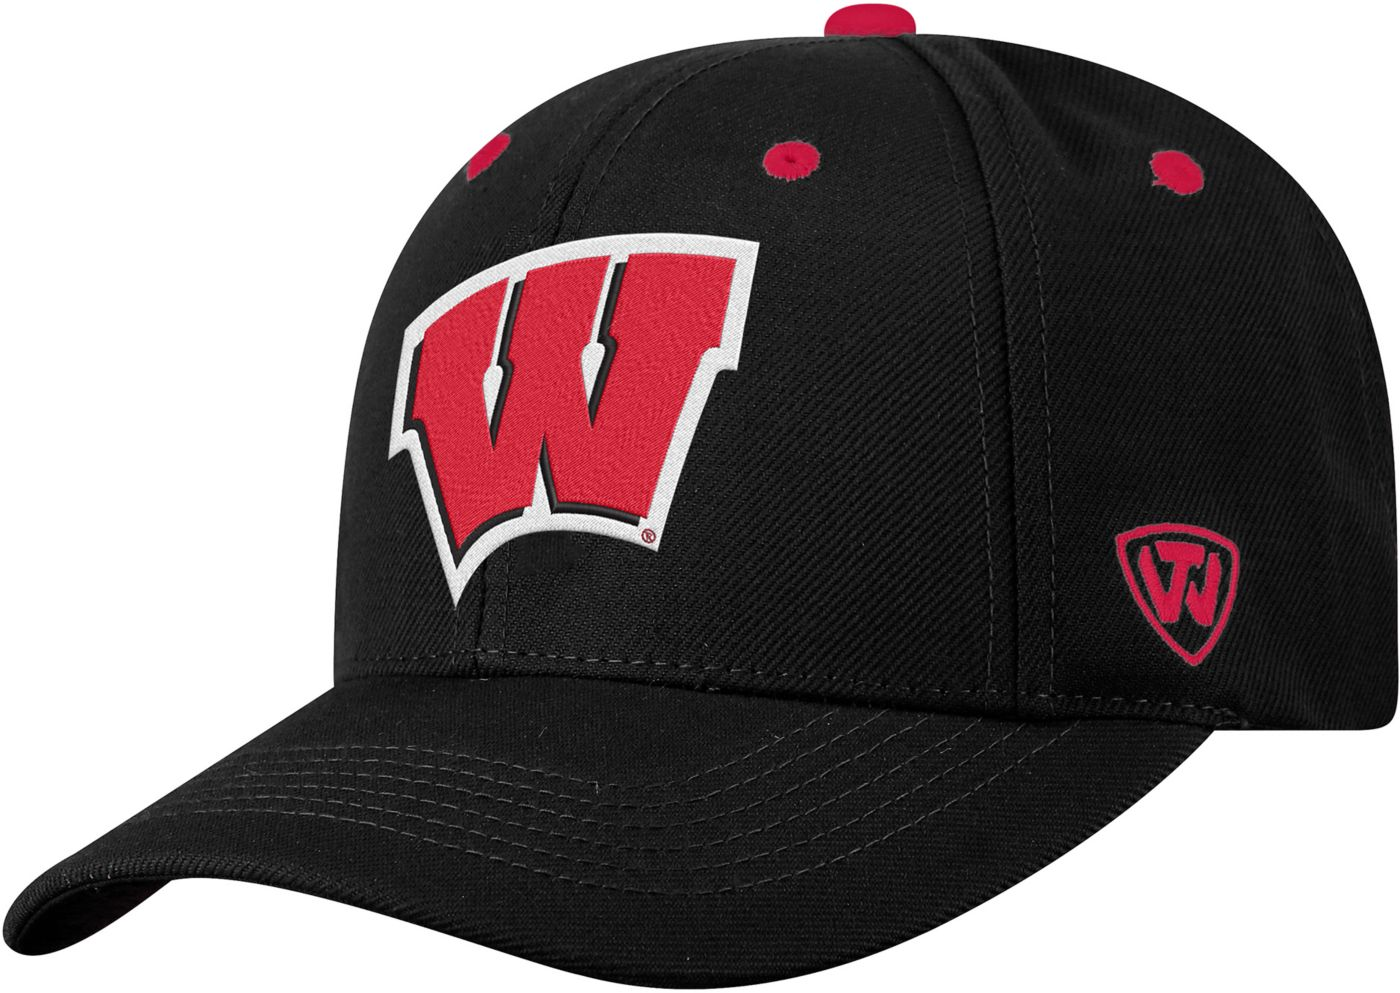 Top of the World Men's Wisconsin Badgers Triple Threat Adjustable Black Hat